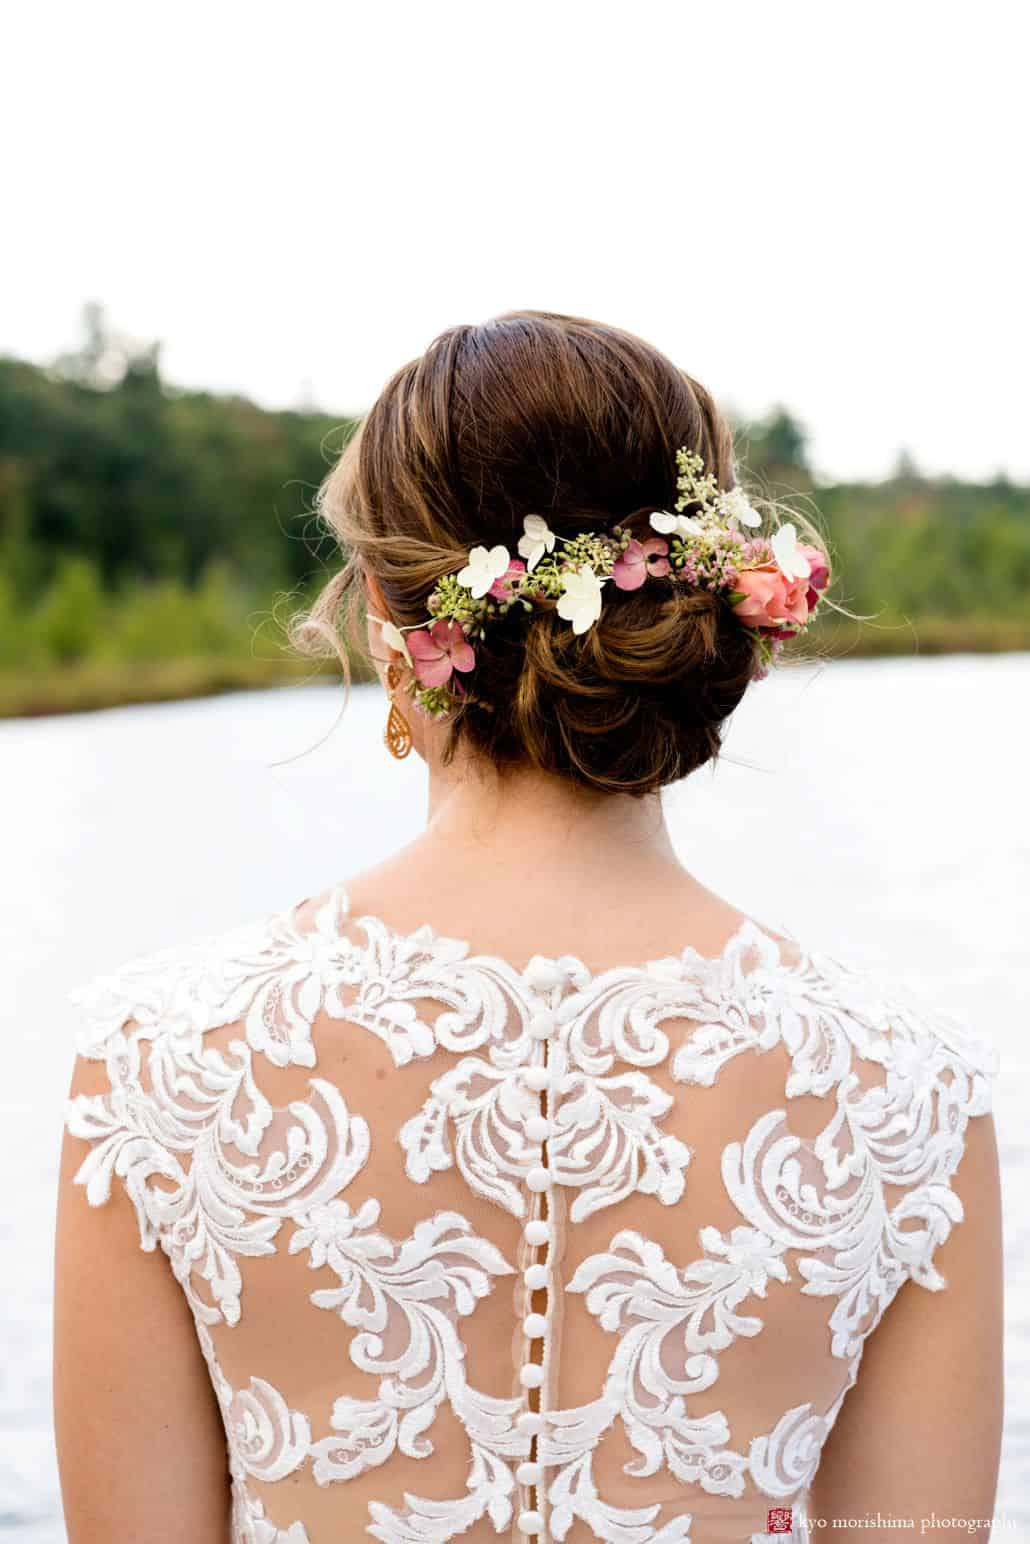 Bride overlooking pond wearing lace back wedding dress by Castle Couture with cloth covered buttons, pink and white flowers in bride's hair with pink rose and eucalyptus seeds, Woodloch Pines wedding photographer, outdoor wedding photography.